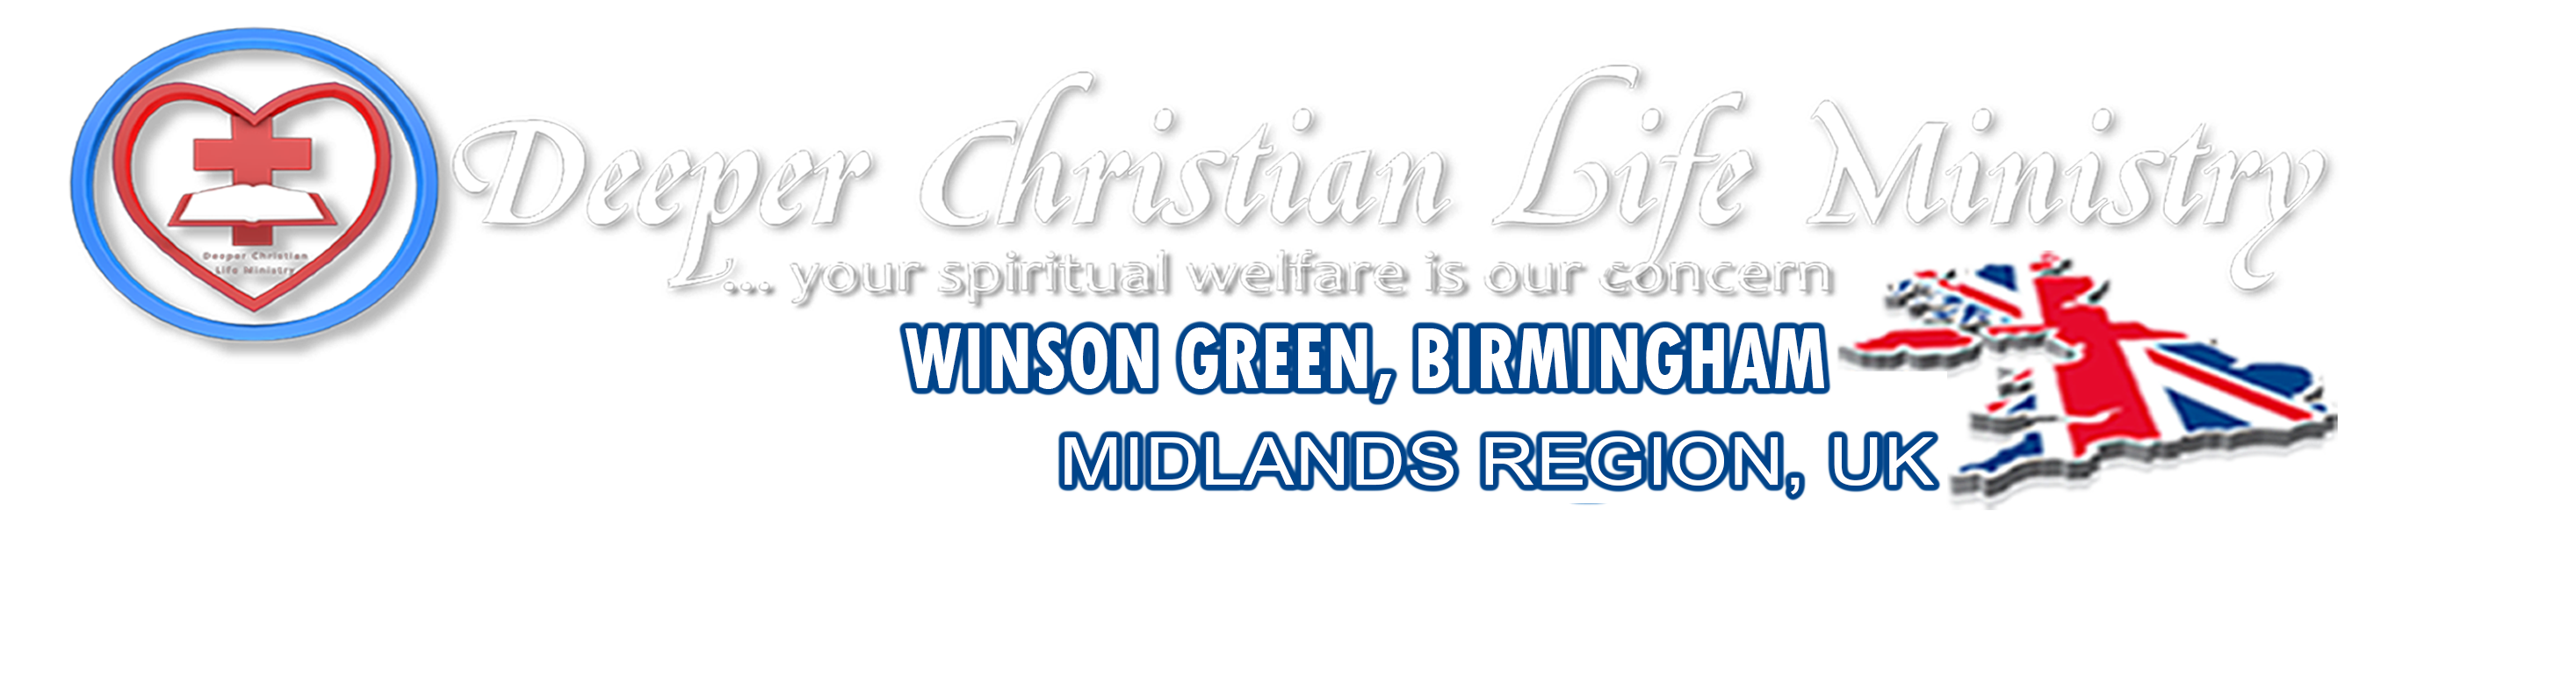 Deeper Christian Life Ministry, Telford